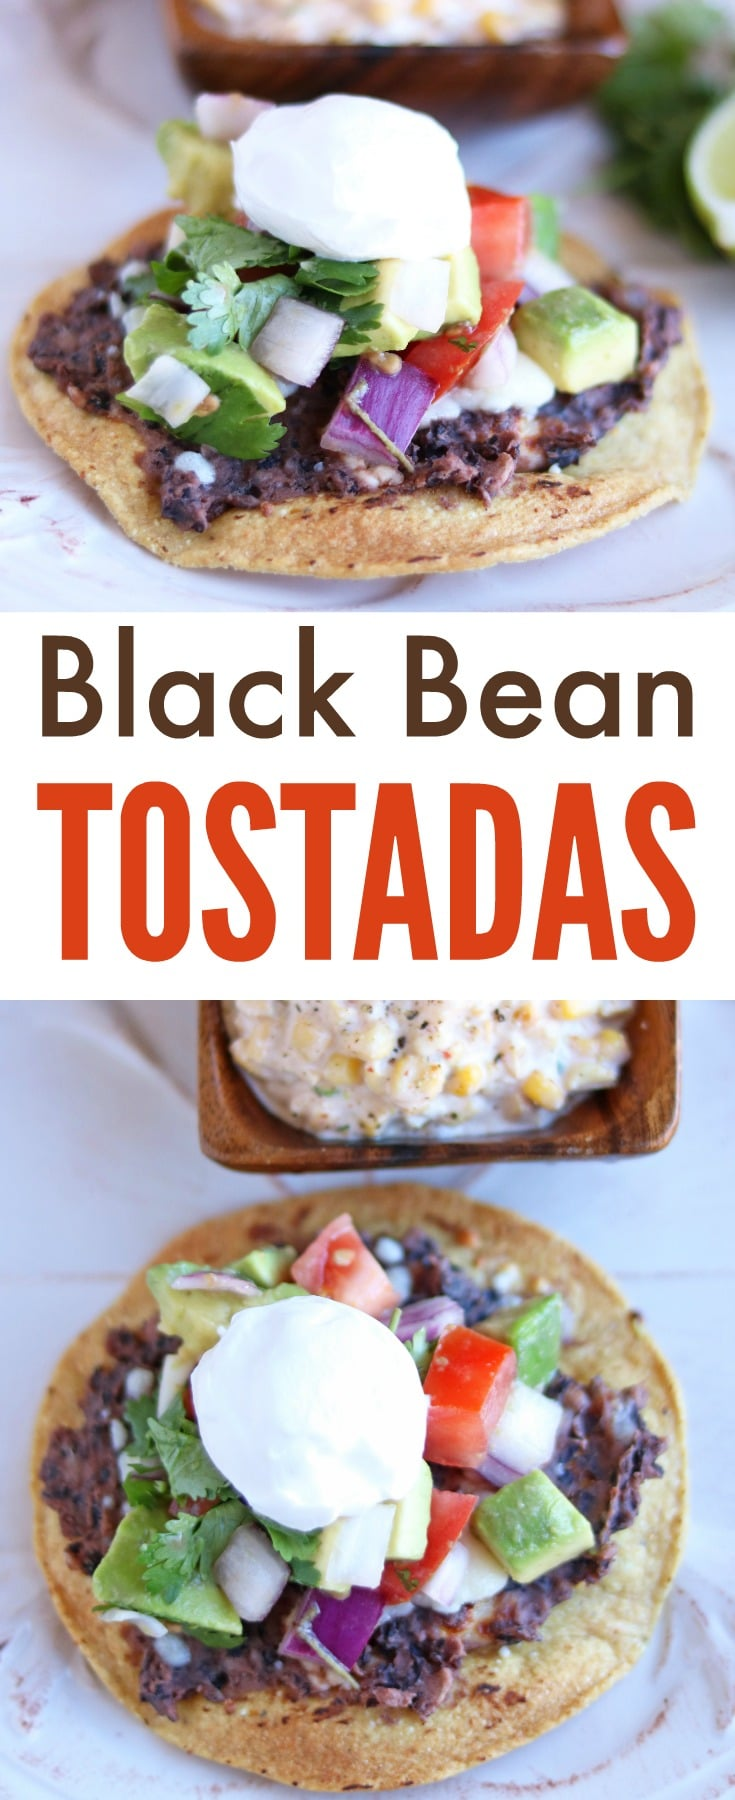 These black bean tostadas are one of our favorite dinners for Meatless Mondays! The black beans are so filling you don't miss the meat and it has all of our favorite Mexican flavors. #meatlessmondays #mexicanfood #blackbean #tostadas via @wondermomwannab